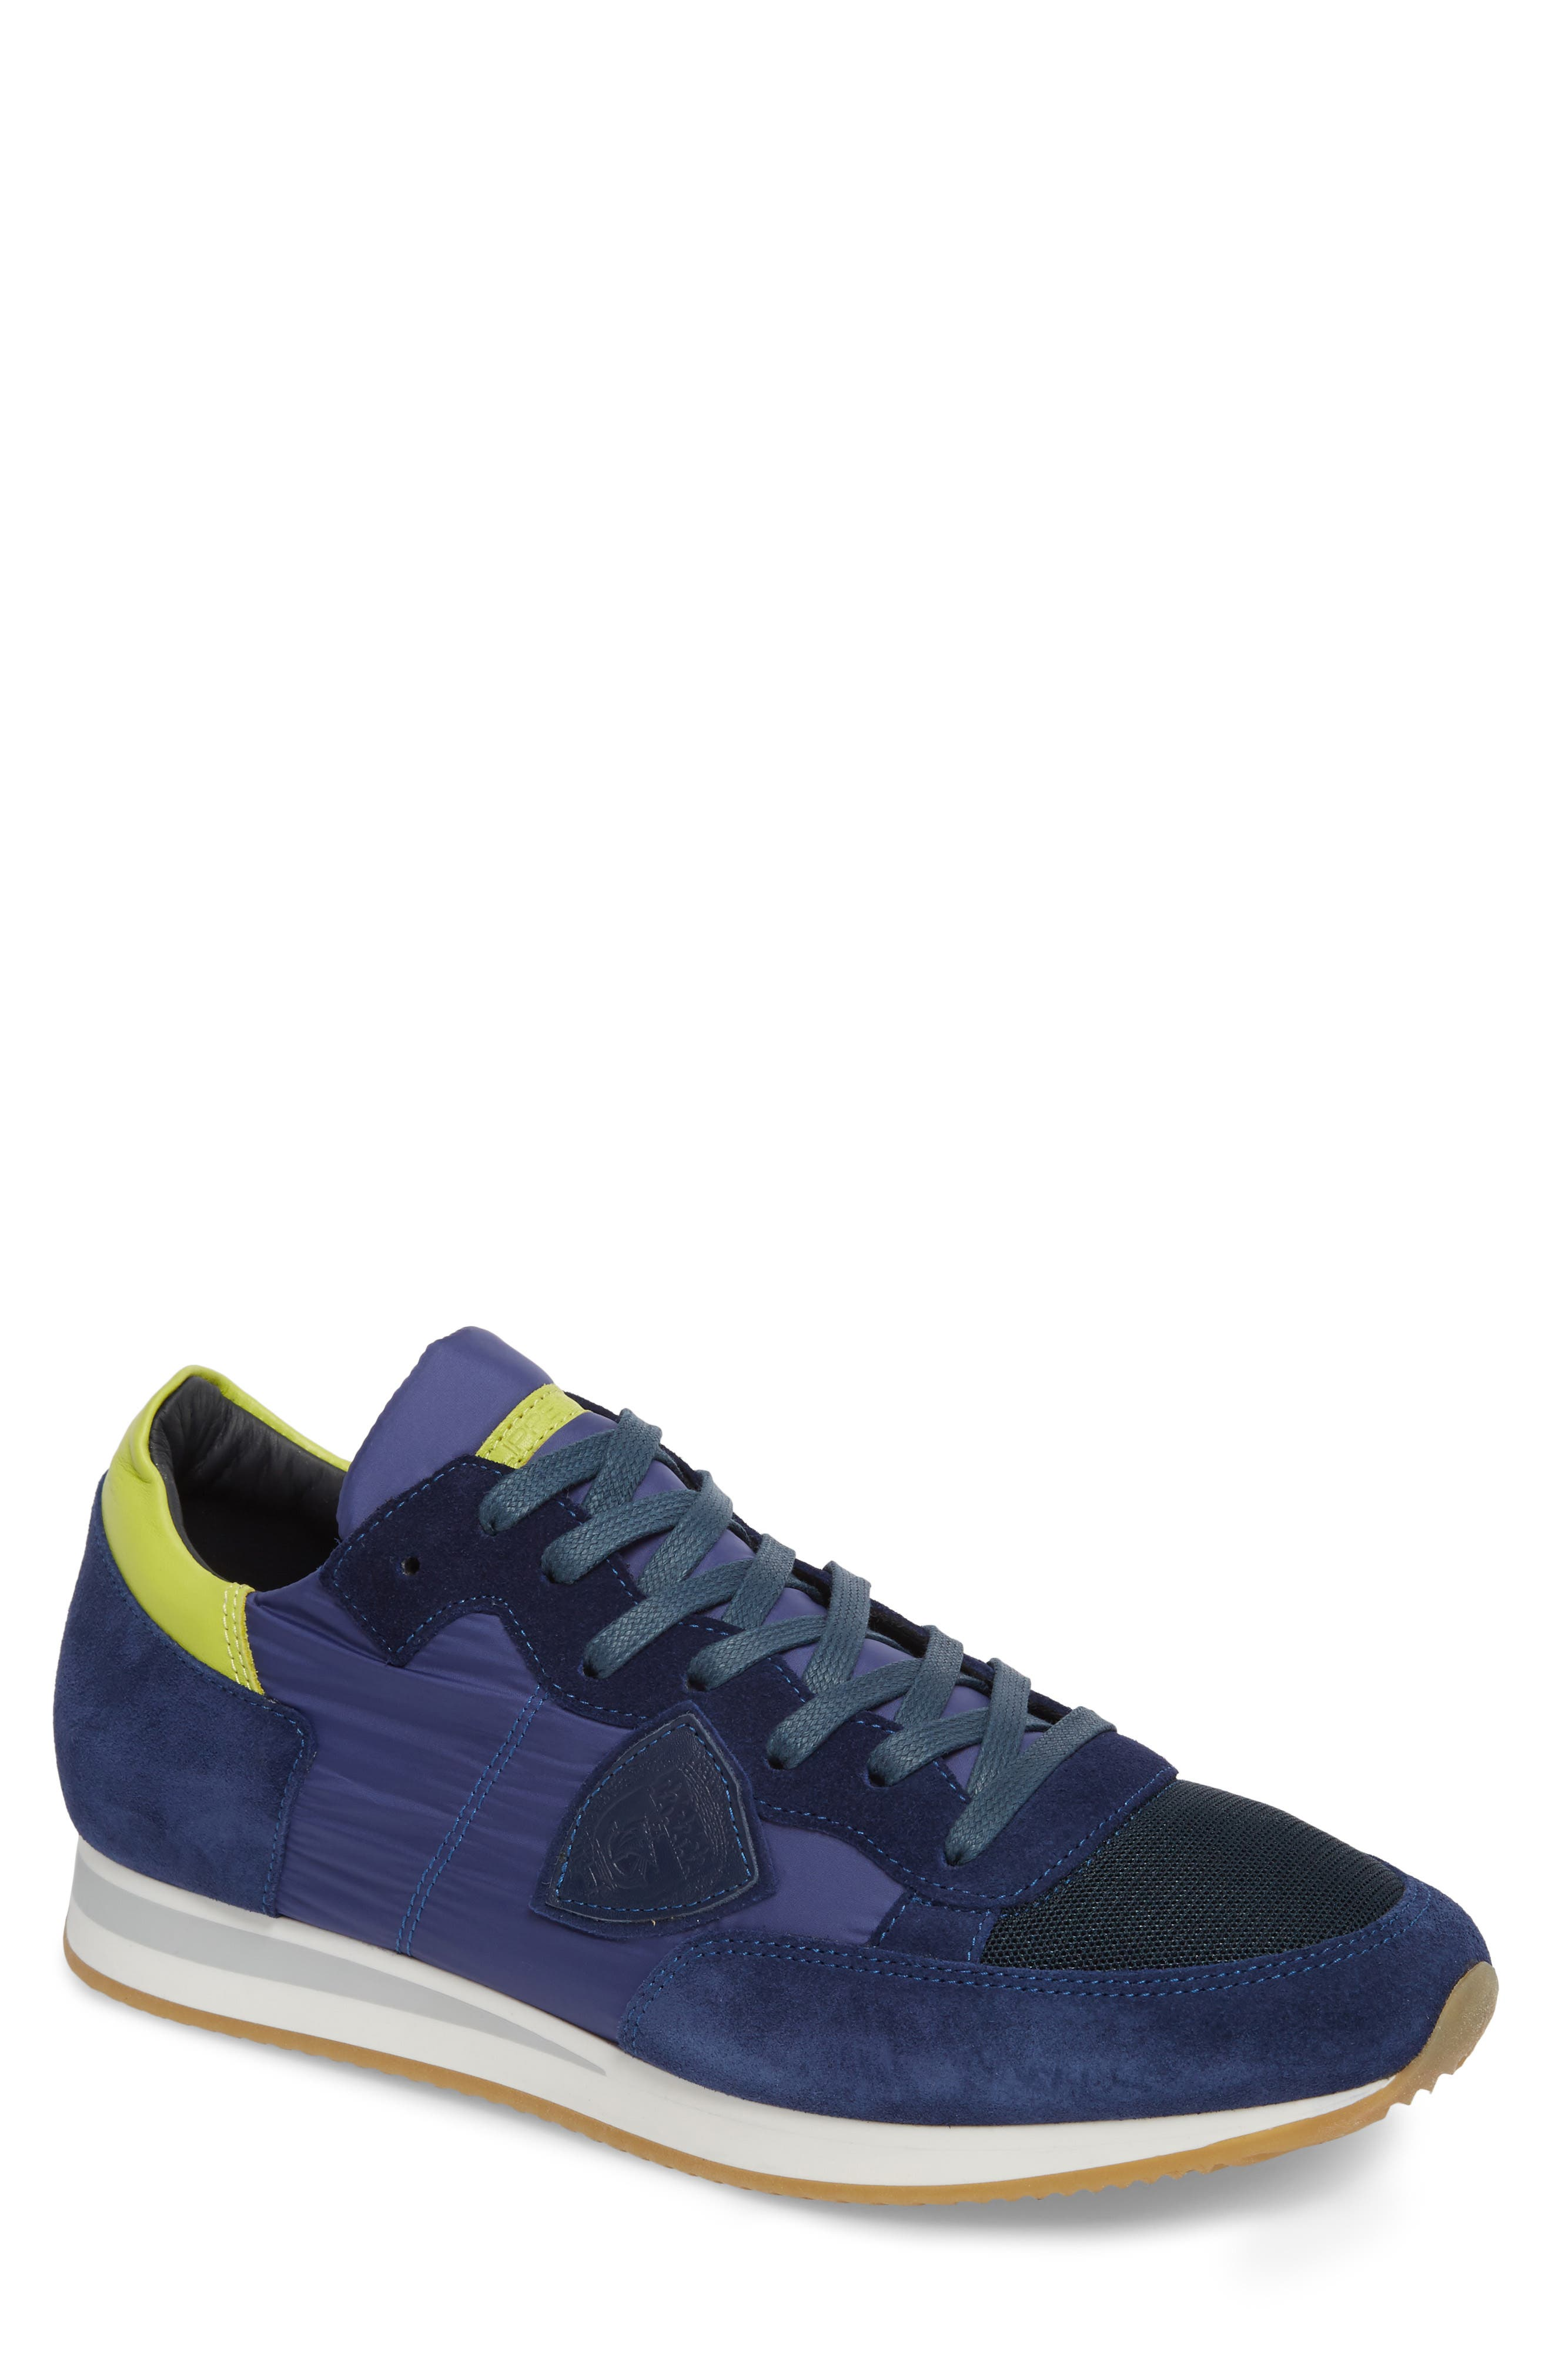 Tropez Low Top Sneaker,                             Main thumbnail 1, color,                             430